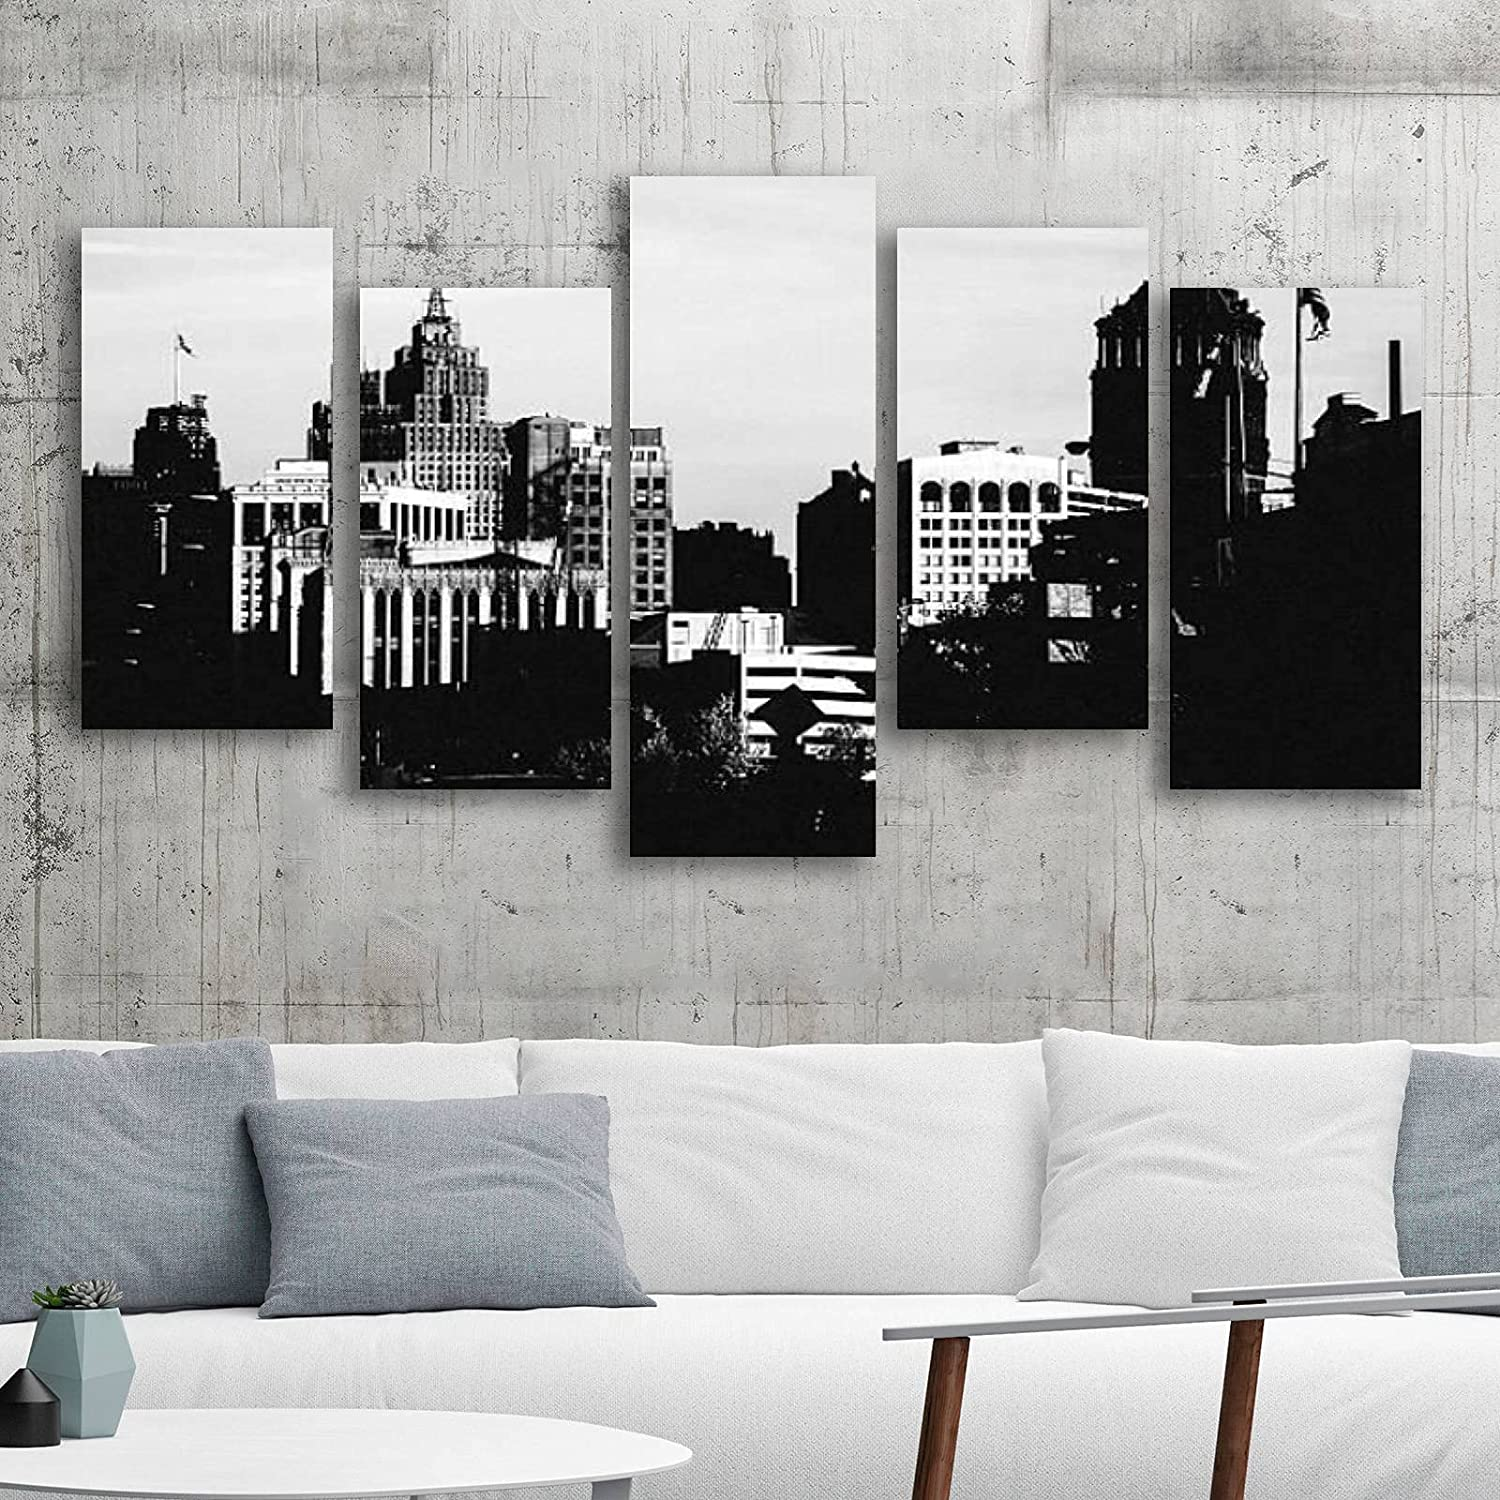 Canvas Wall Art Challenge the lowest price Painting Downtown Prints Gicle on Detroit Free shipping anywhere in the nation